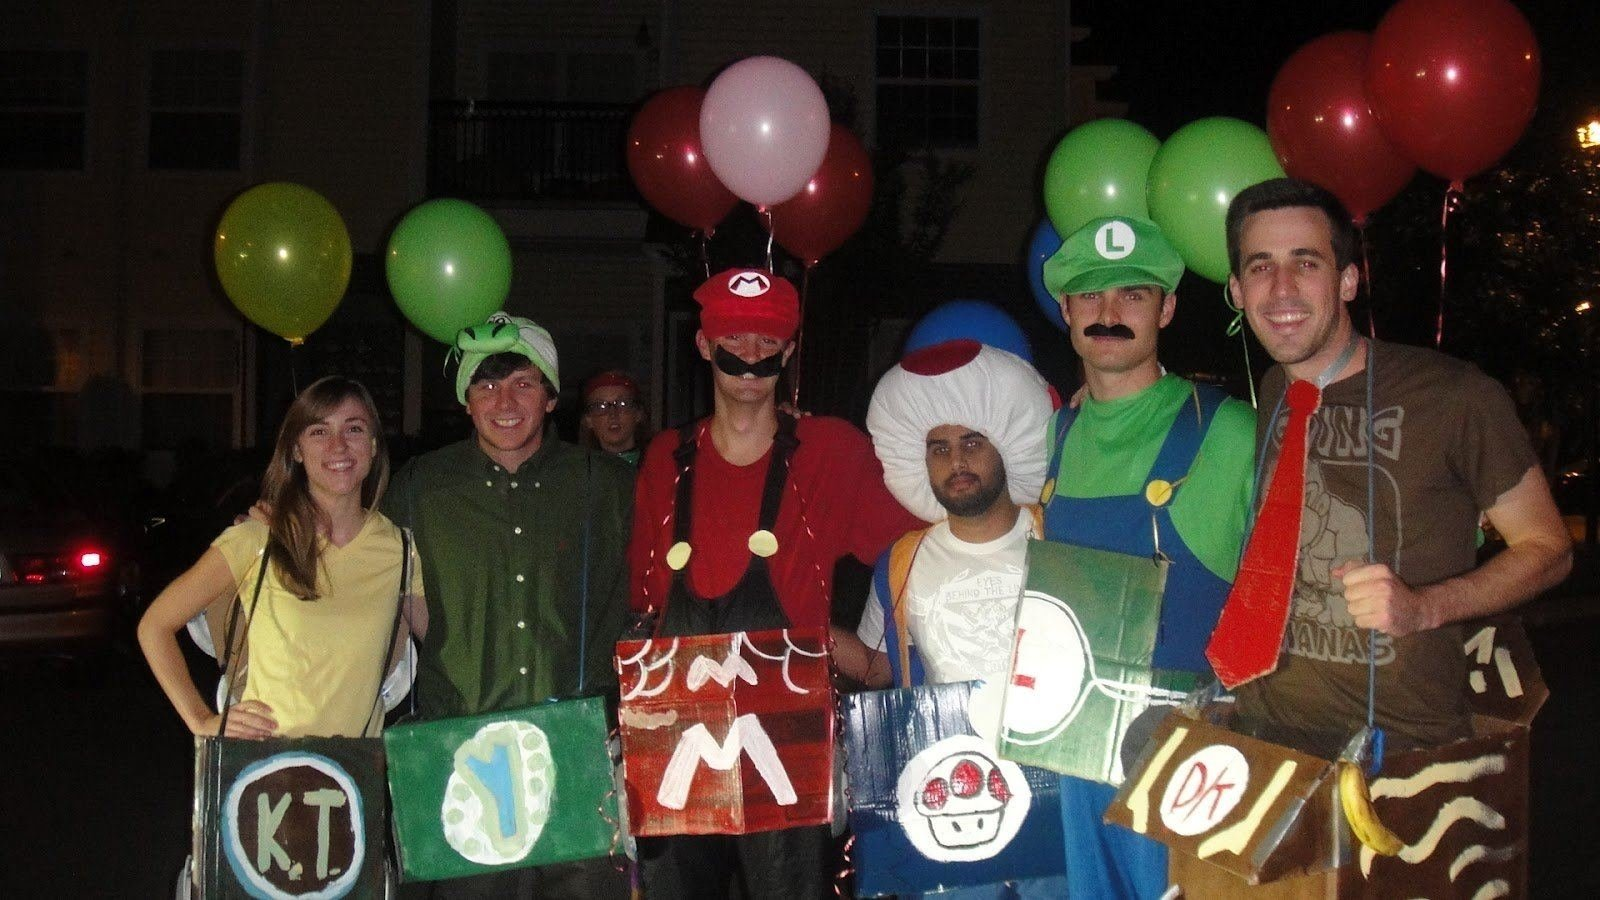 10 Cute List Of Halloween Costume Ideas this list of group halloween costume ideas will blow your mind 36 2020